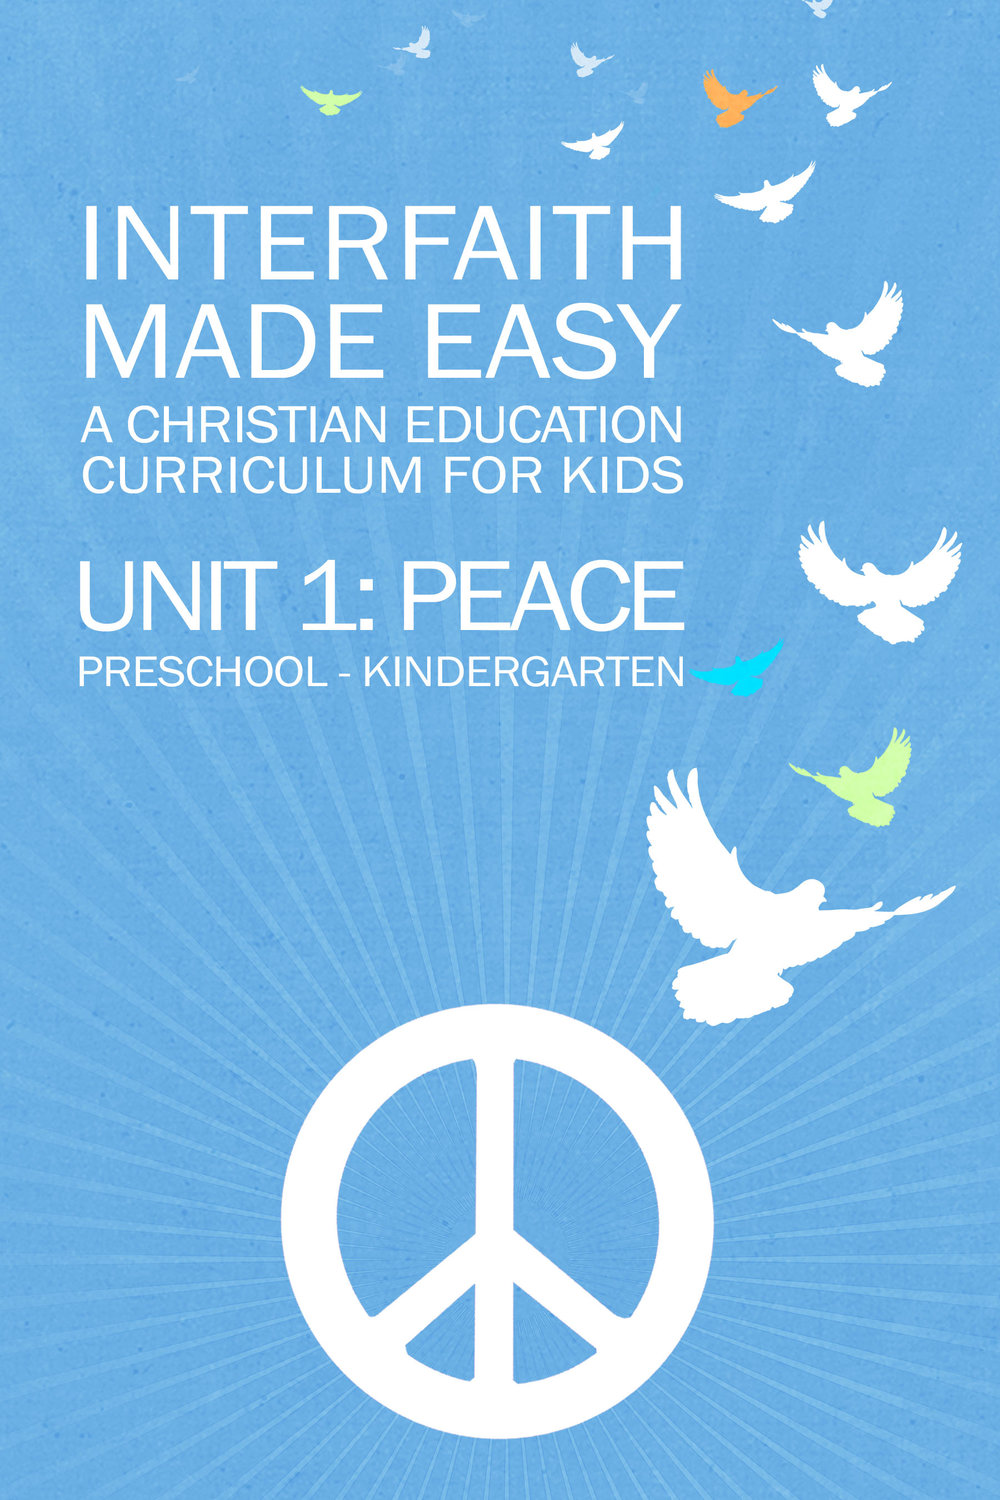 unit-1-peace-age-group-1.jpg